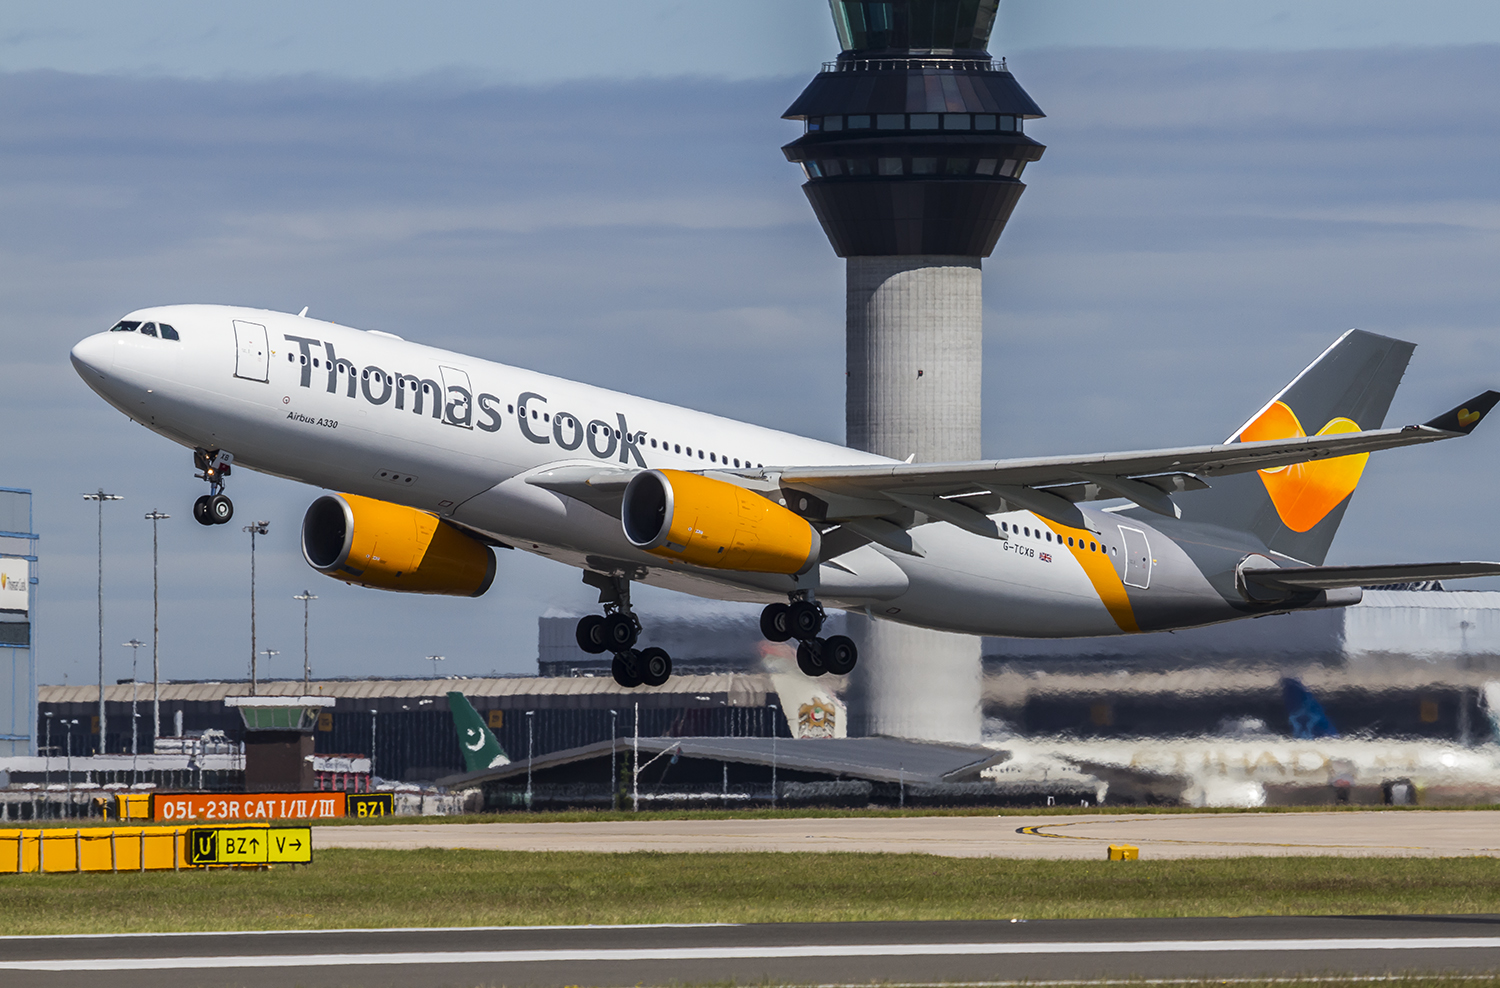 En Airbus A330 fra Thomas Cook Airlines. Foto: Thomas Cook Airlines